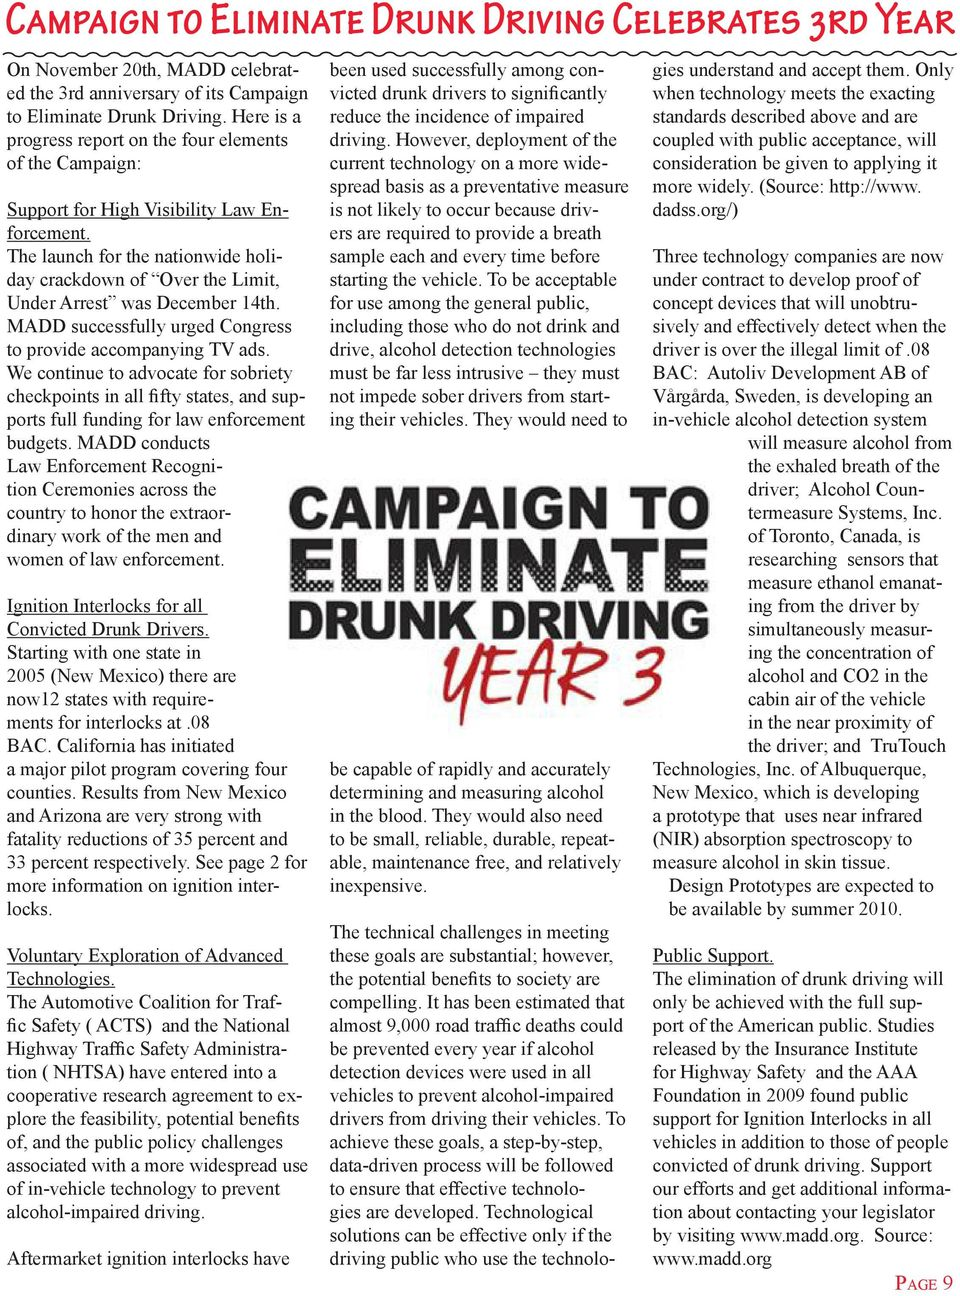 The launch for the nationwide holiday crackdown of Over the Limit, Under Arrest was December 14th. MADD successfully urged Congress to provide accompanying TV ads.